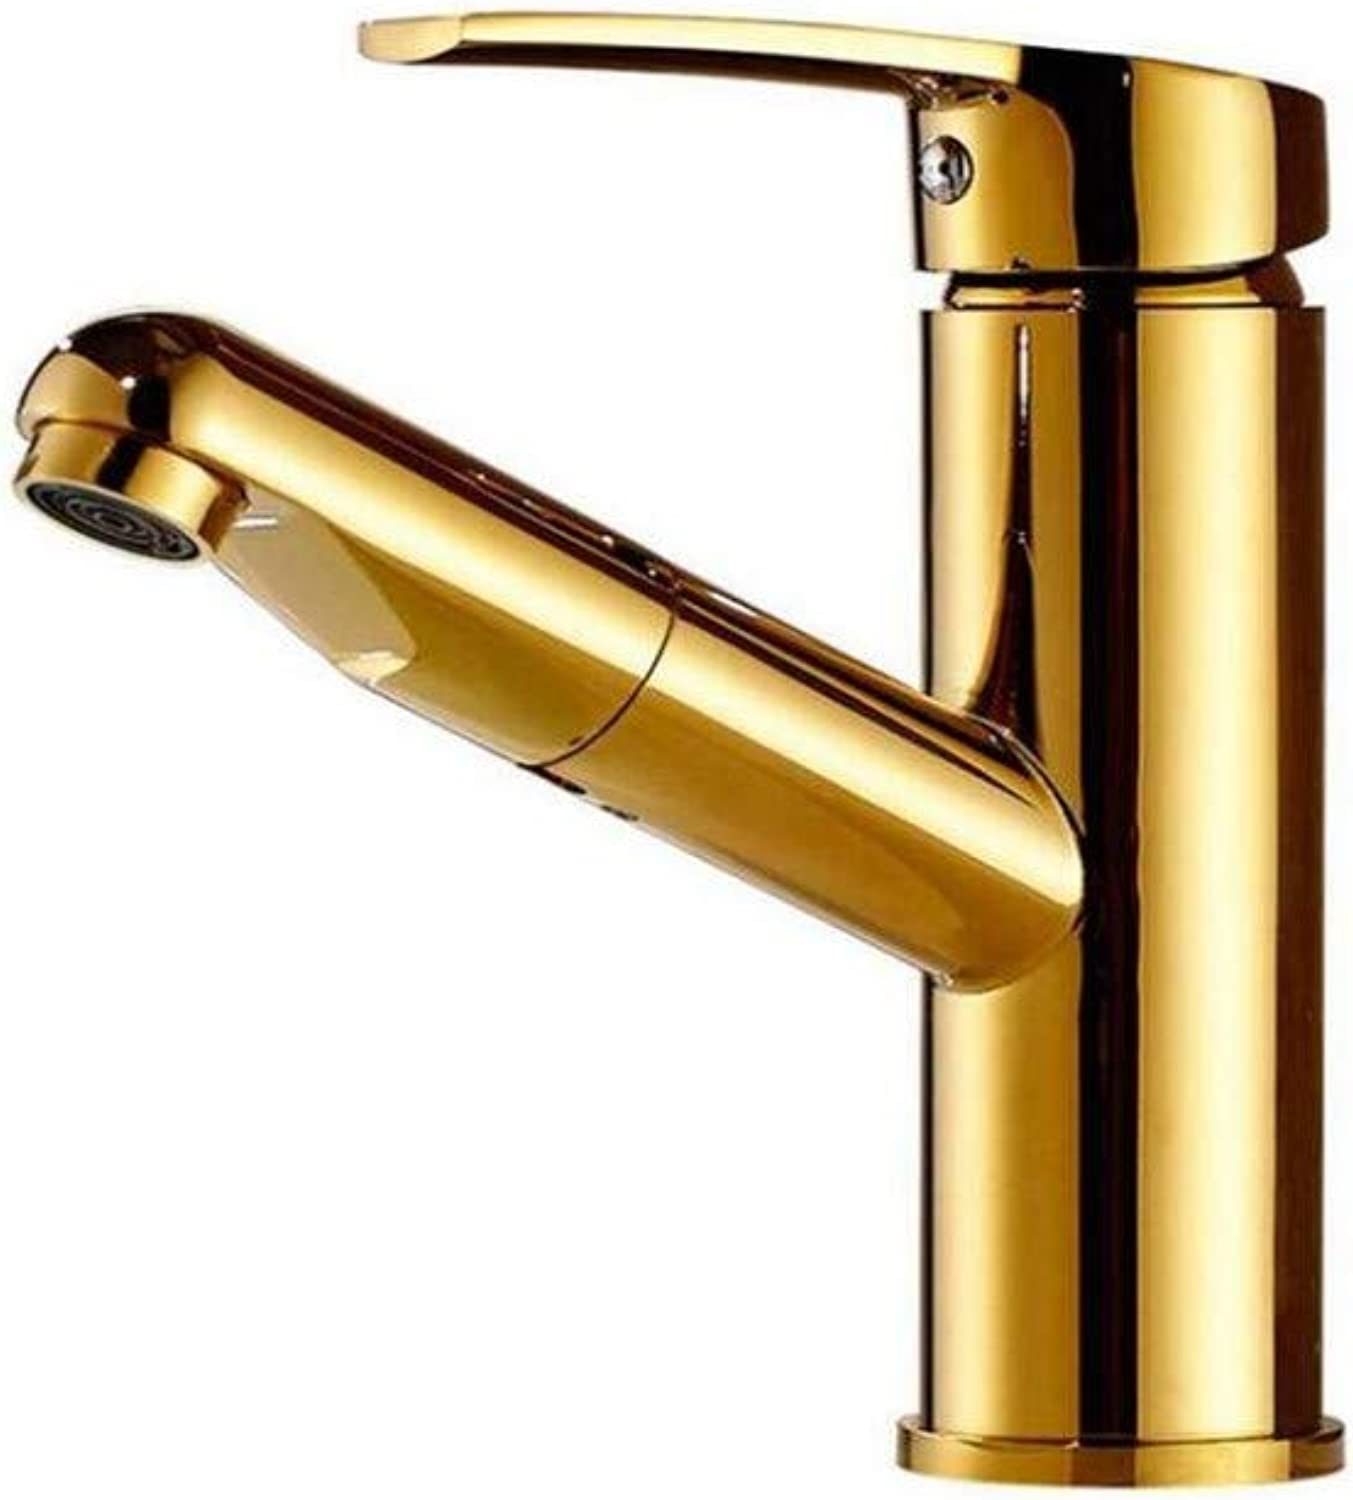 Taps Kitchen Sinkchrome Hot and Cold Water Copper gold Plated Faucet Wash Basin Faucet Cold Water Cold Water.